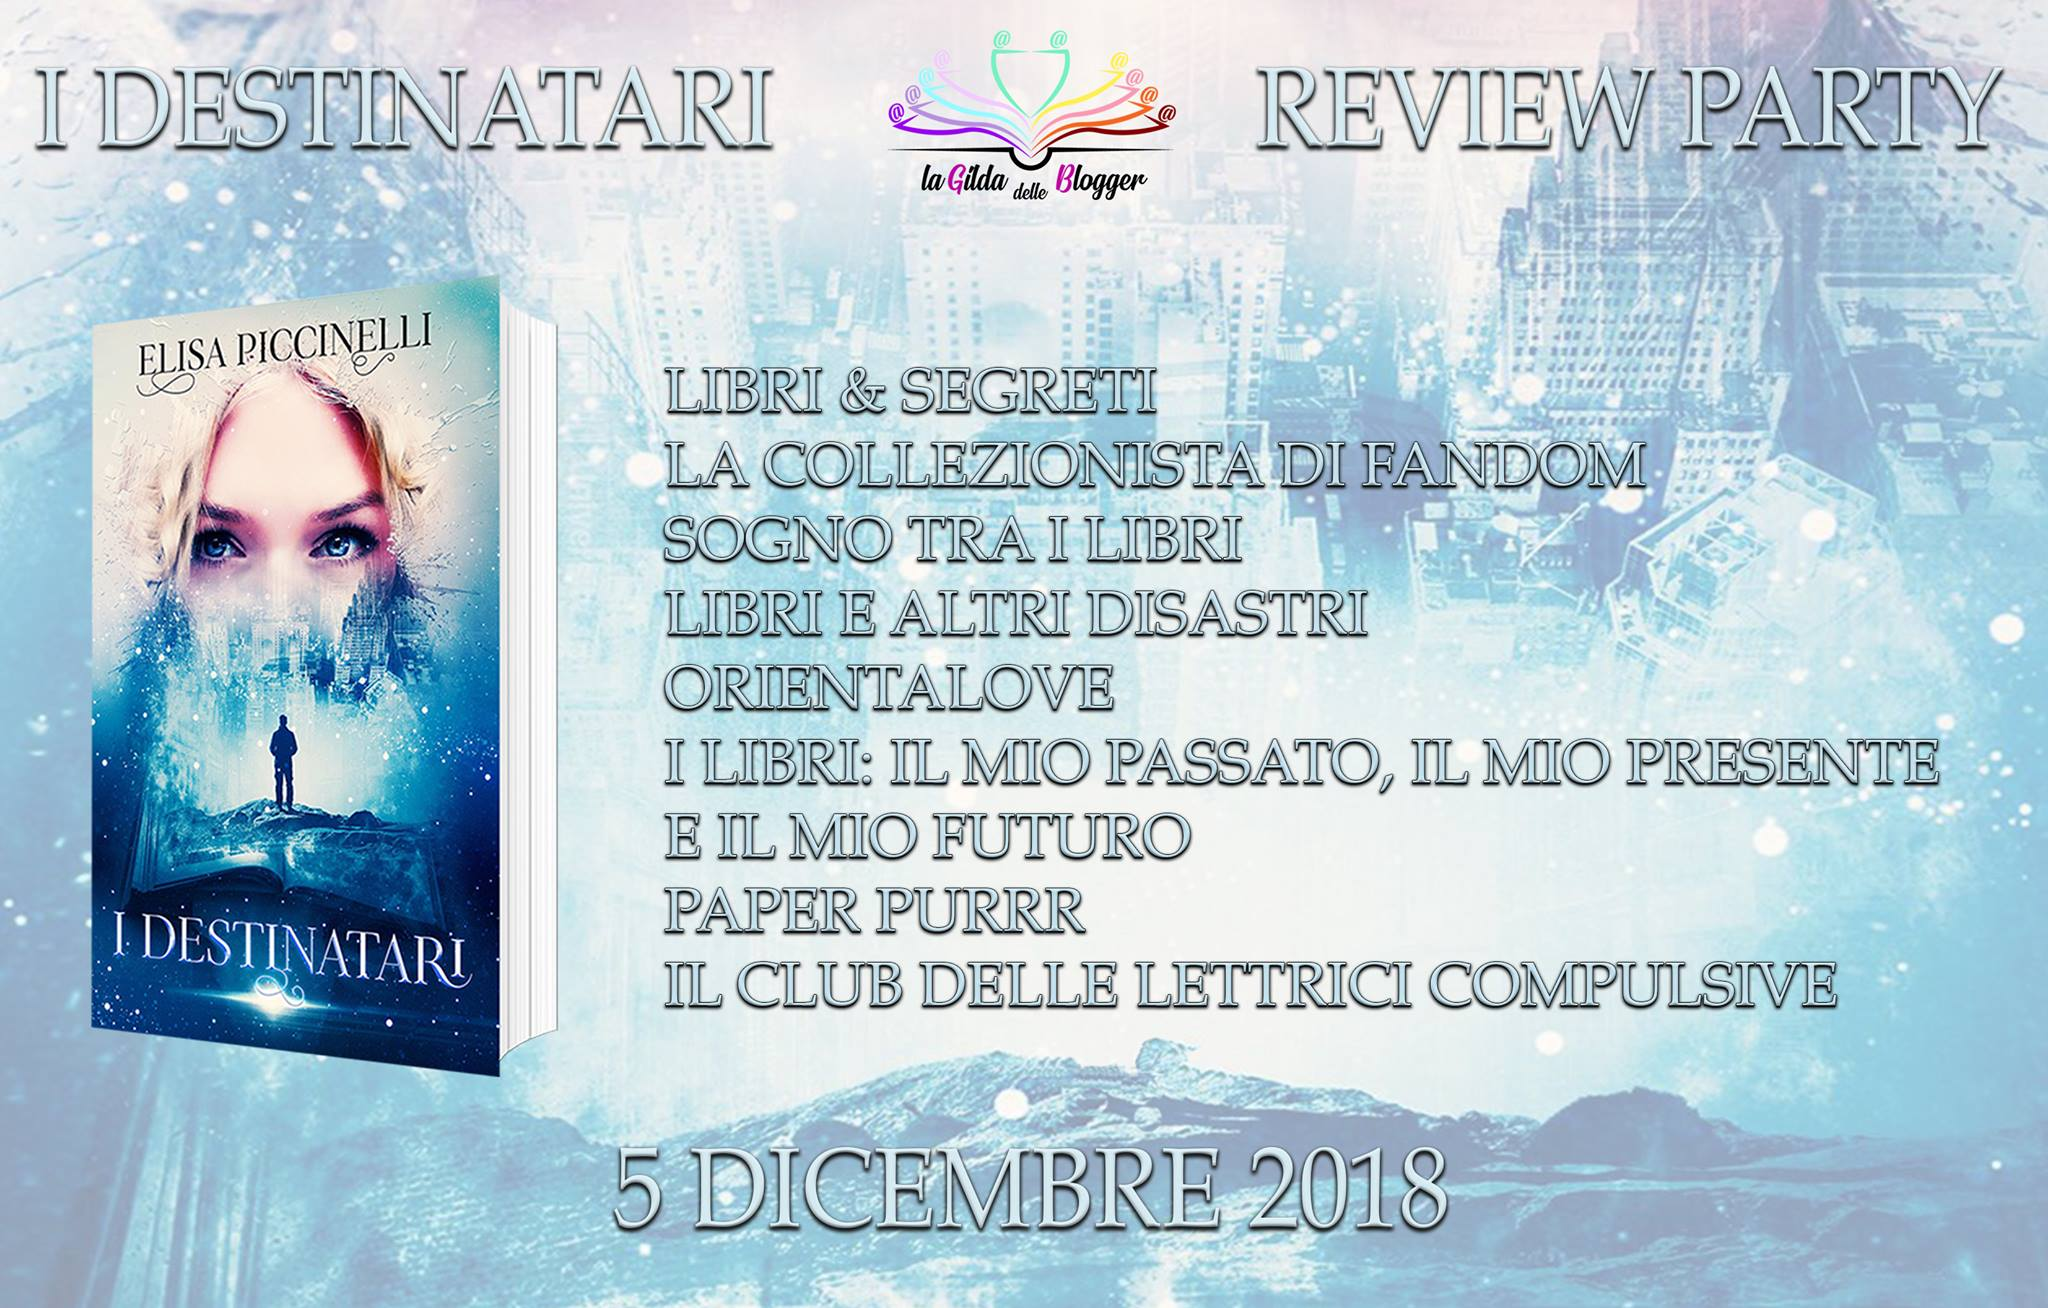 Review Party – I Destinatari di Elisa Piccinelli